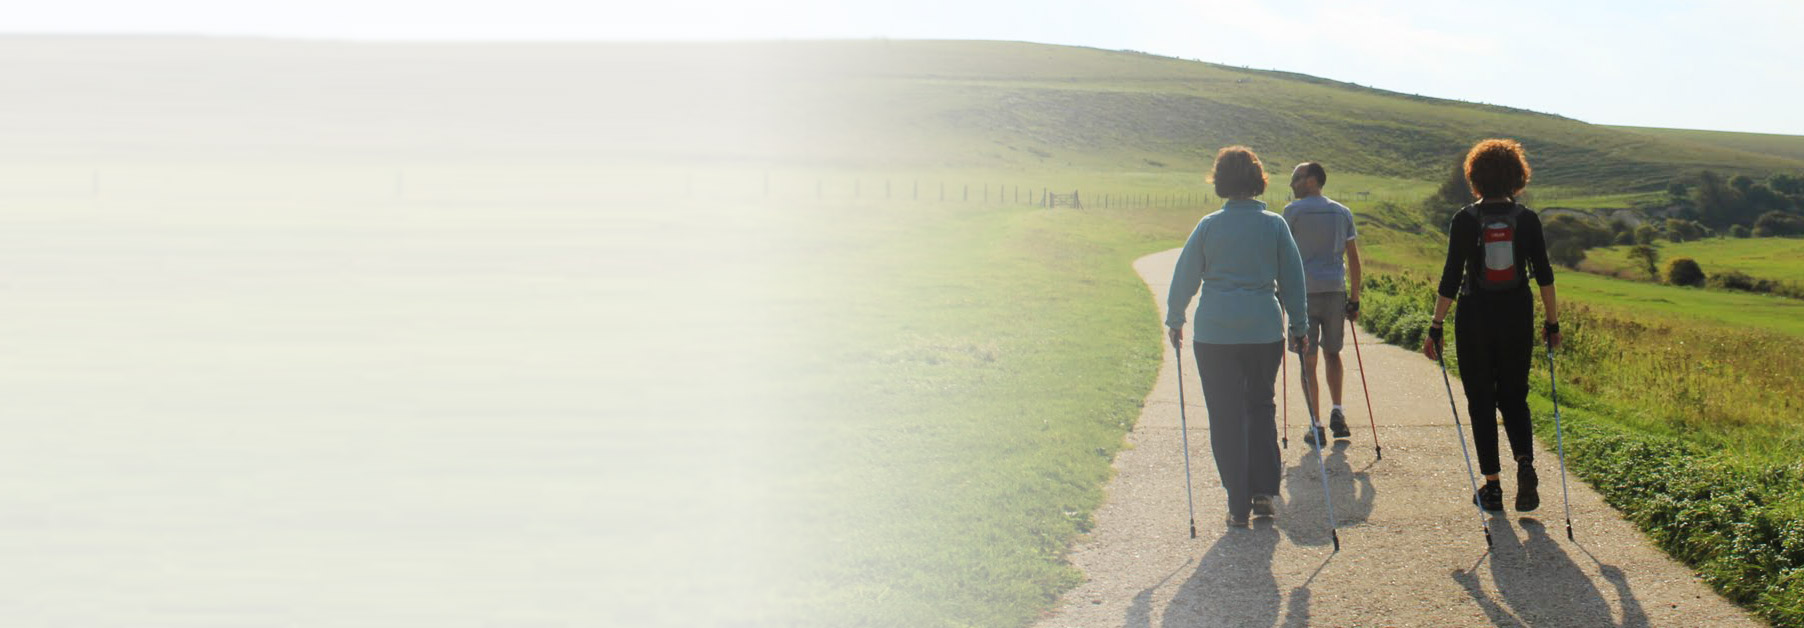 Nordic Walking for Health, South East England